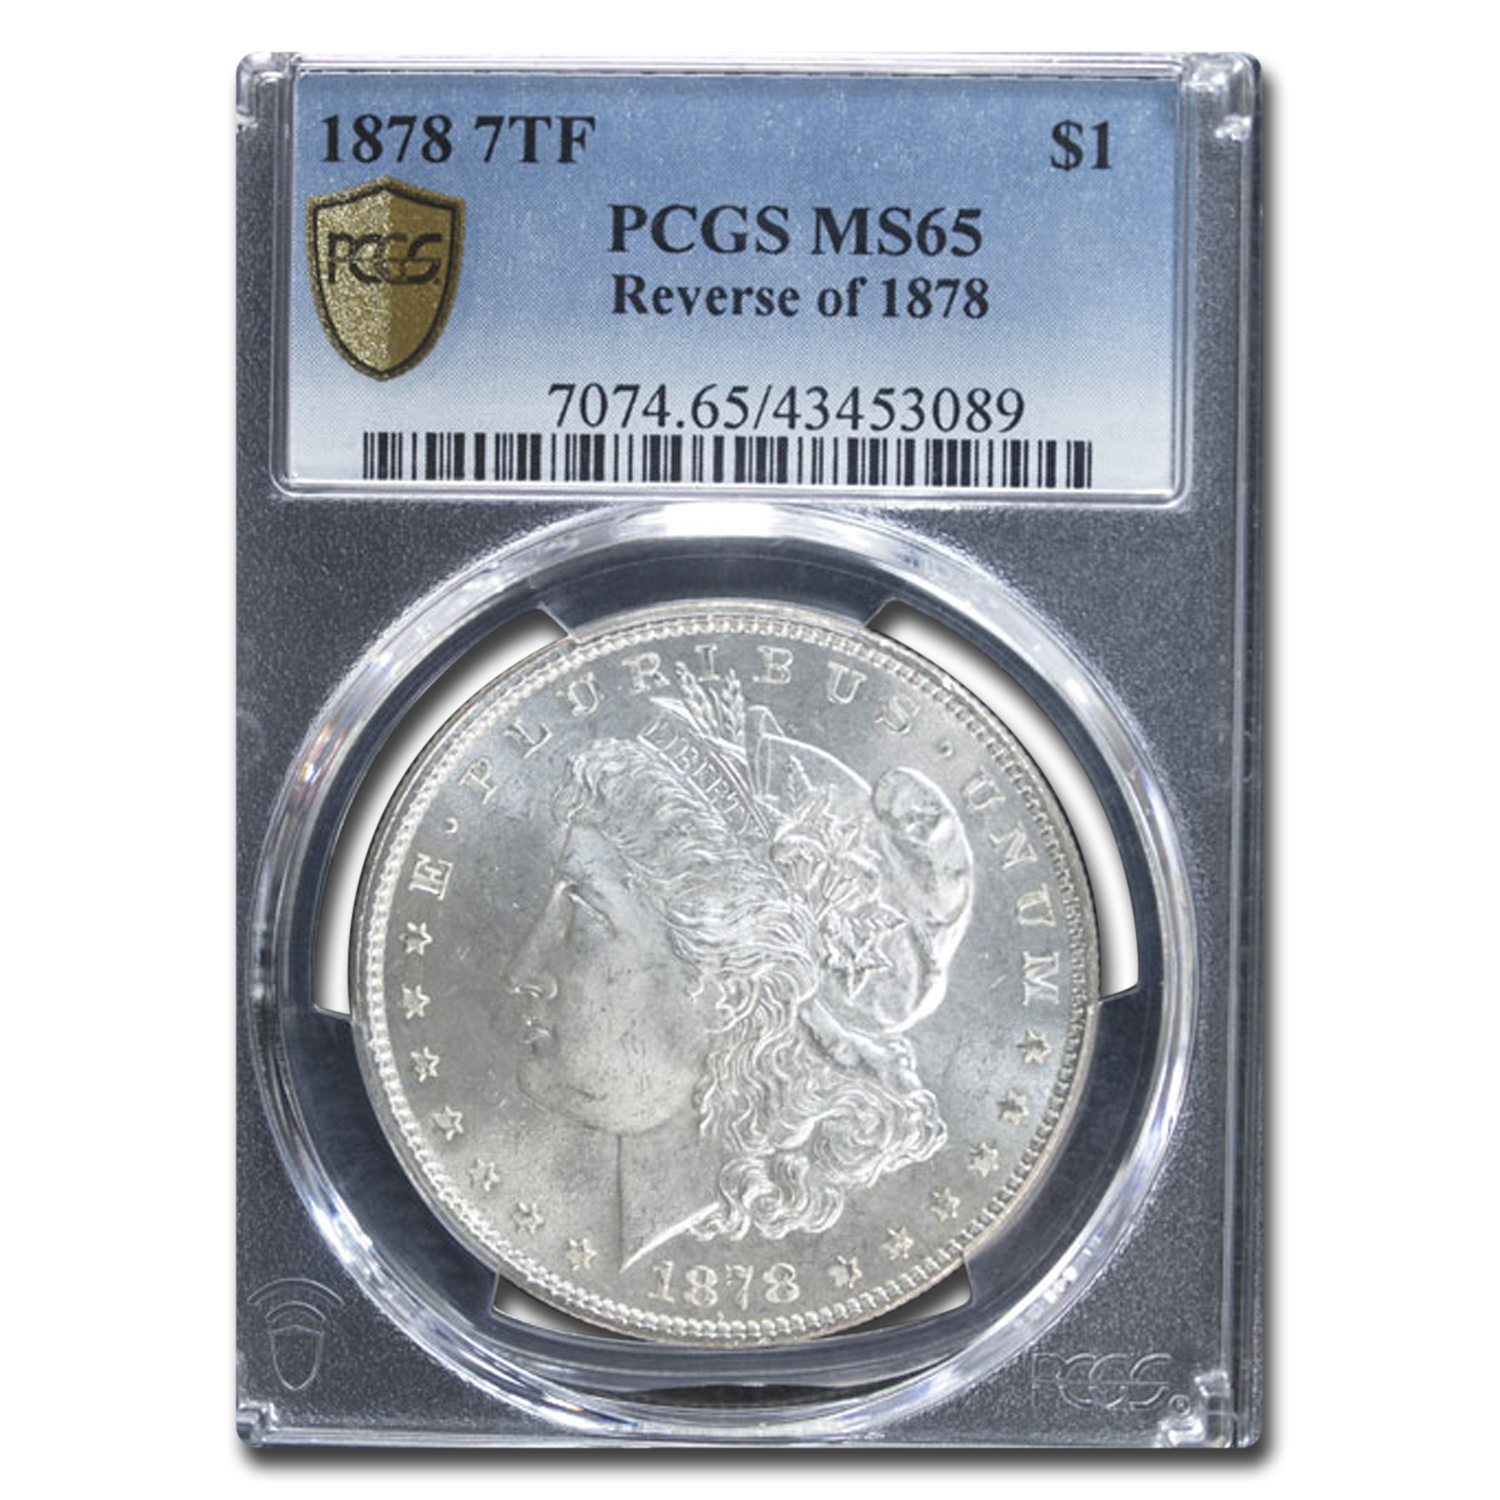 1878 Morgan Dollar 7 TF Rev of 78 MS-65 PCGS